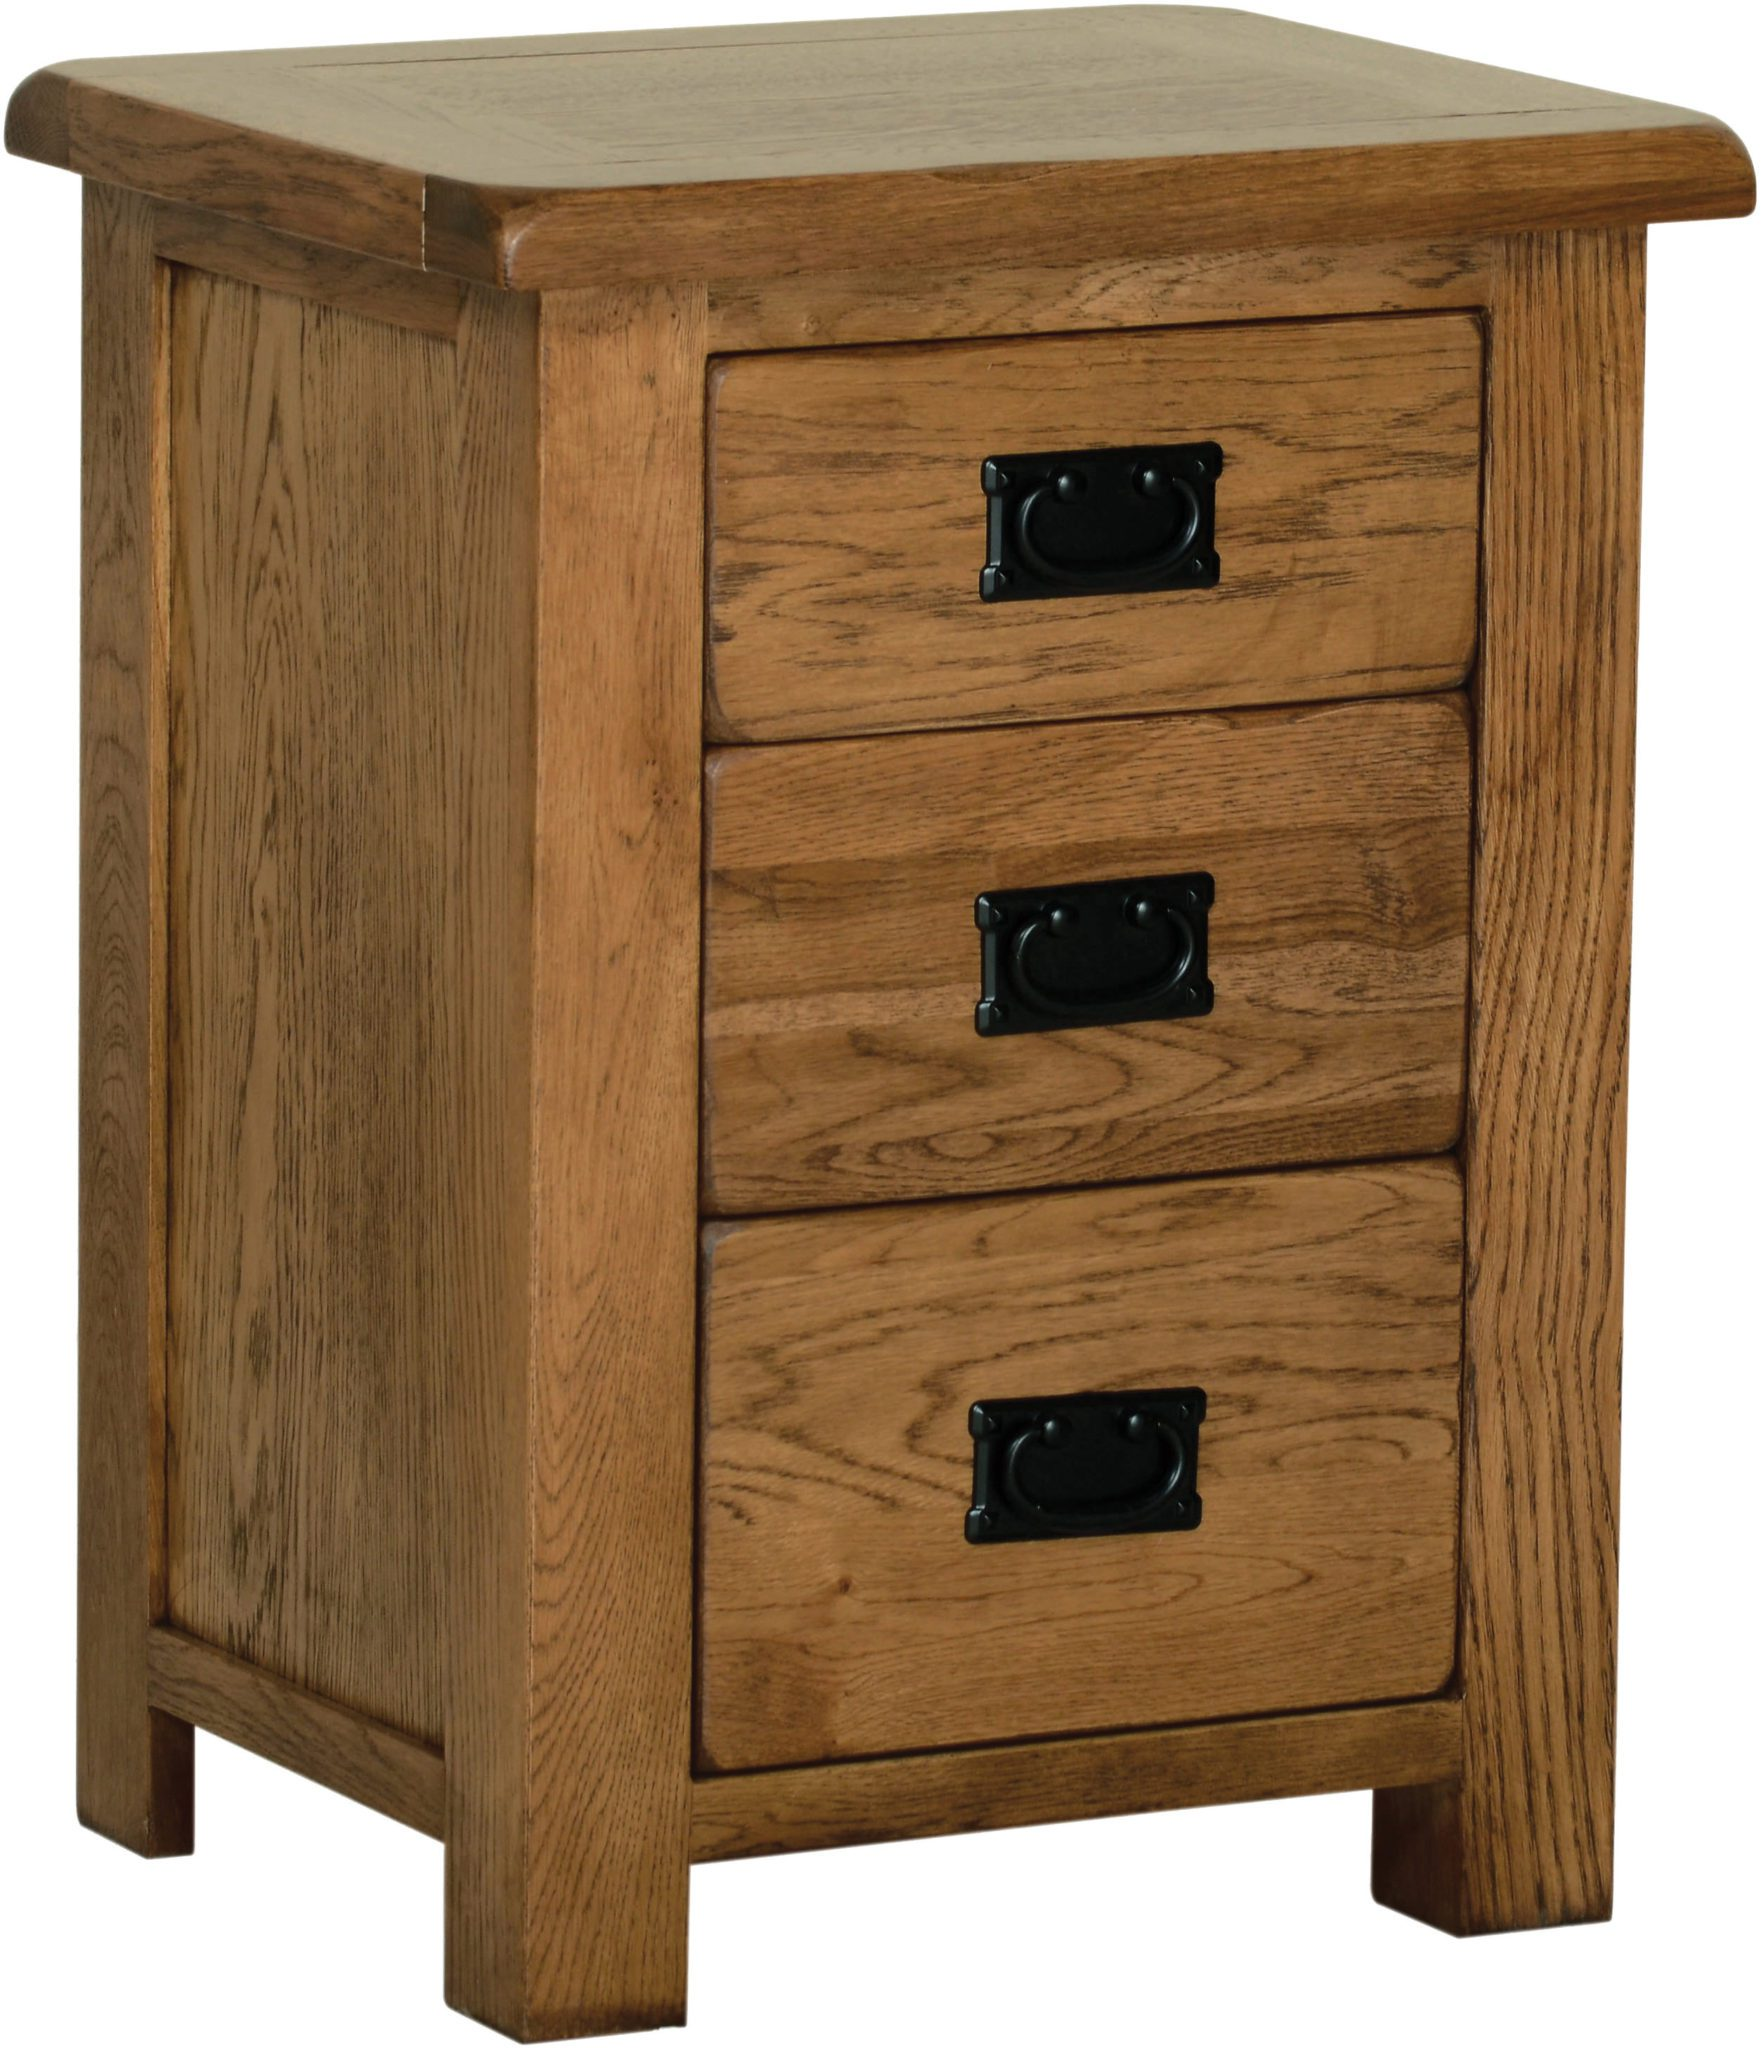 Sudbury Oak 3 Drawer High Bedside. rustic oak style straight lines and shaped edges on tops. rustic black drop down handle SRB40